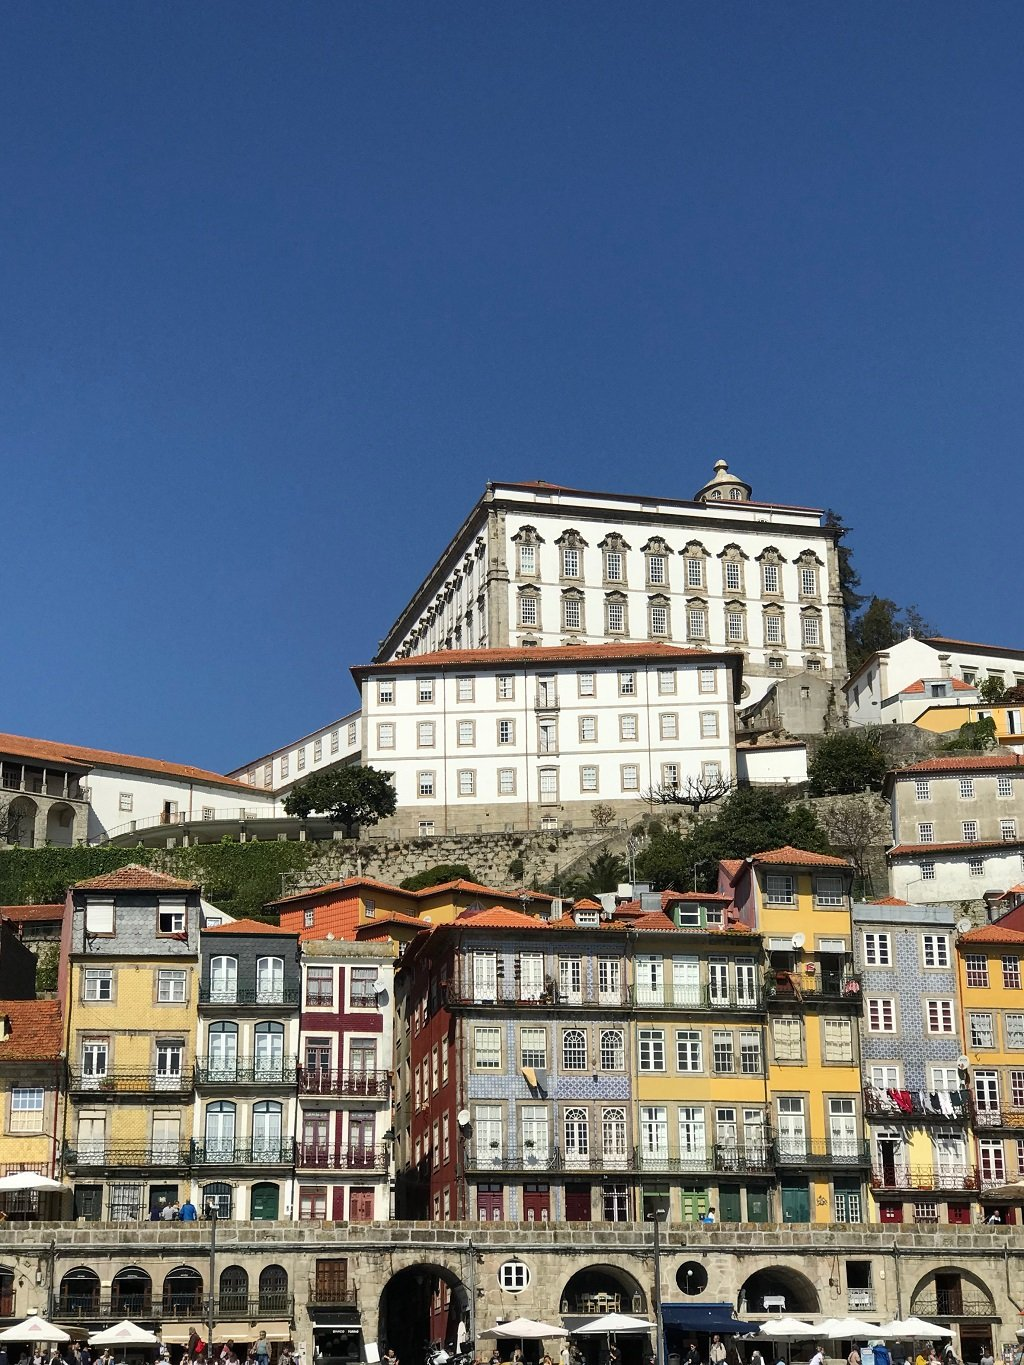 Porto as viewed from a boat on the Duoro.